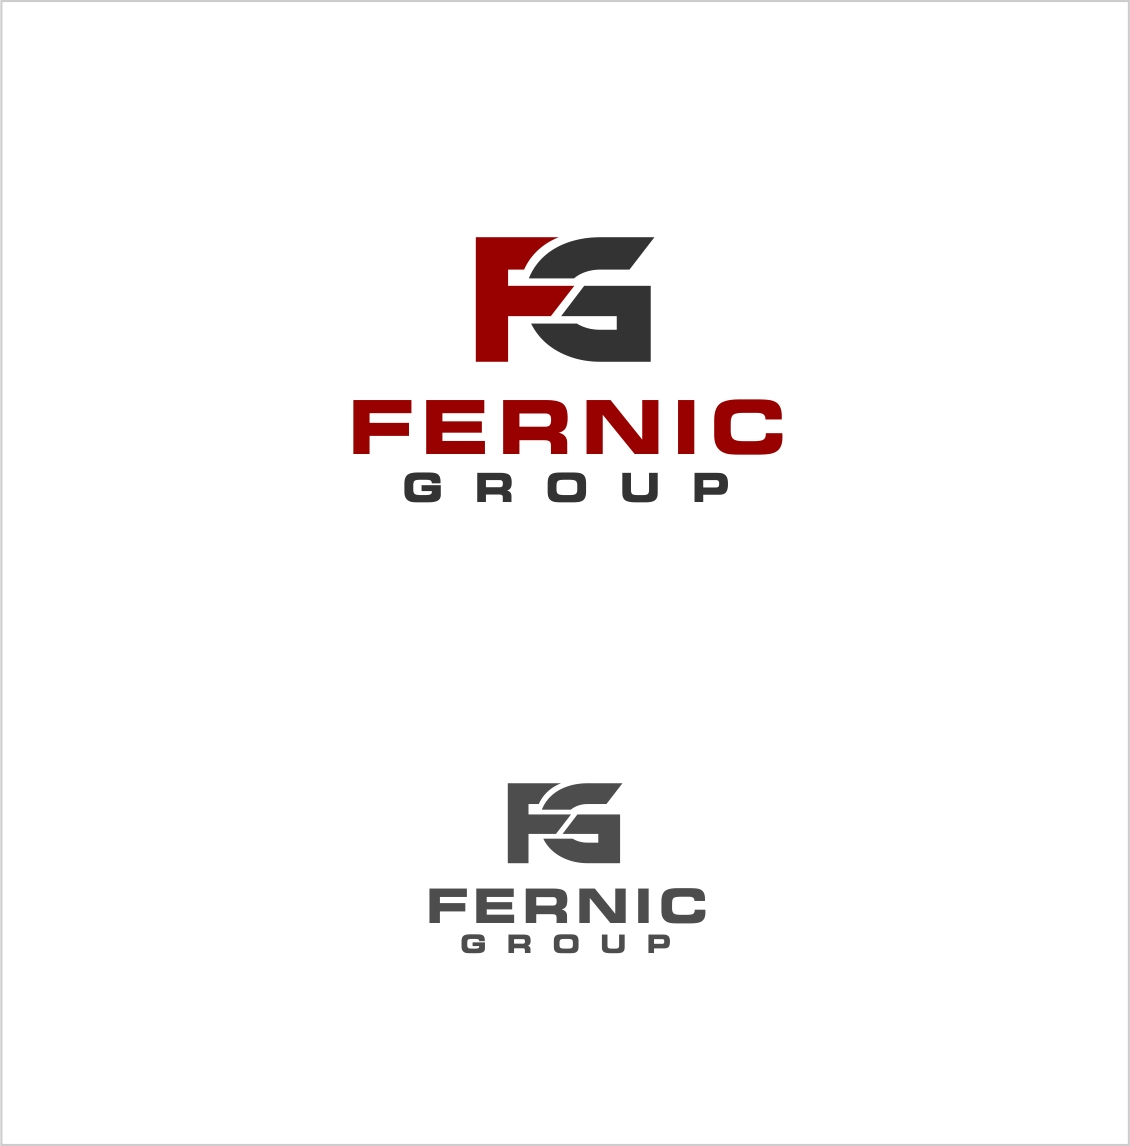 Logo Design by haidu - Entry No. 31 in the Logo Design Contest Artistic Logo Design for Fernic Goup.